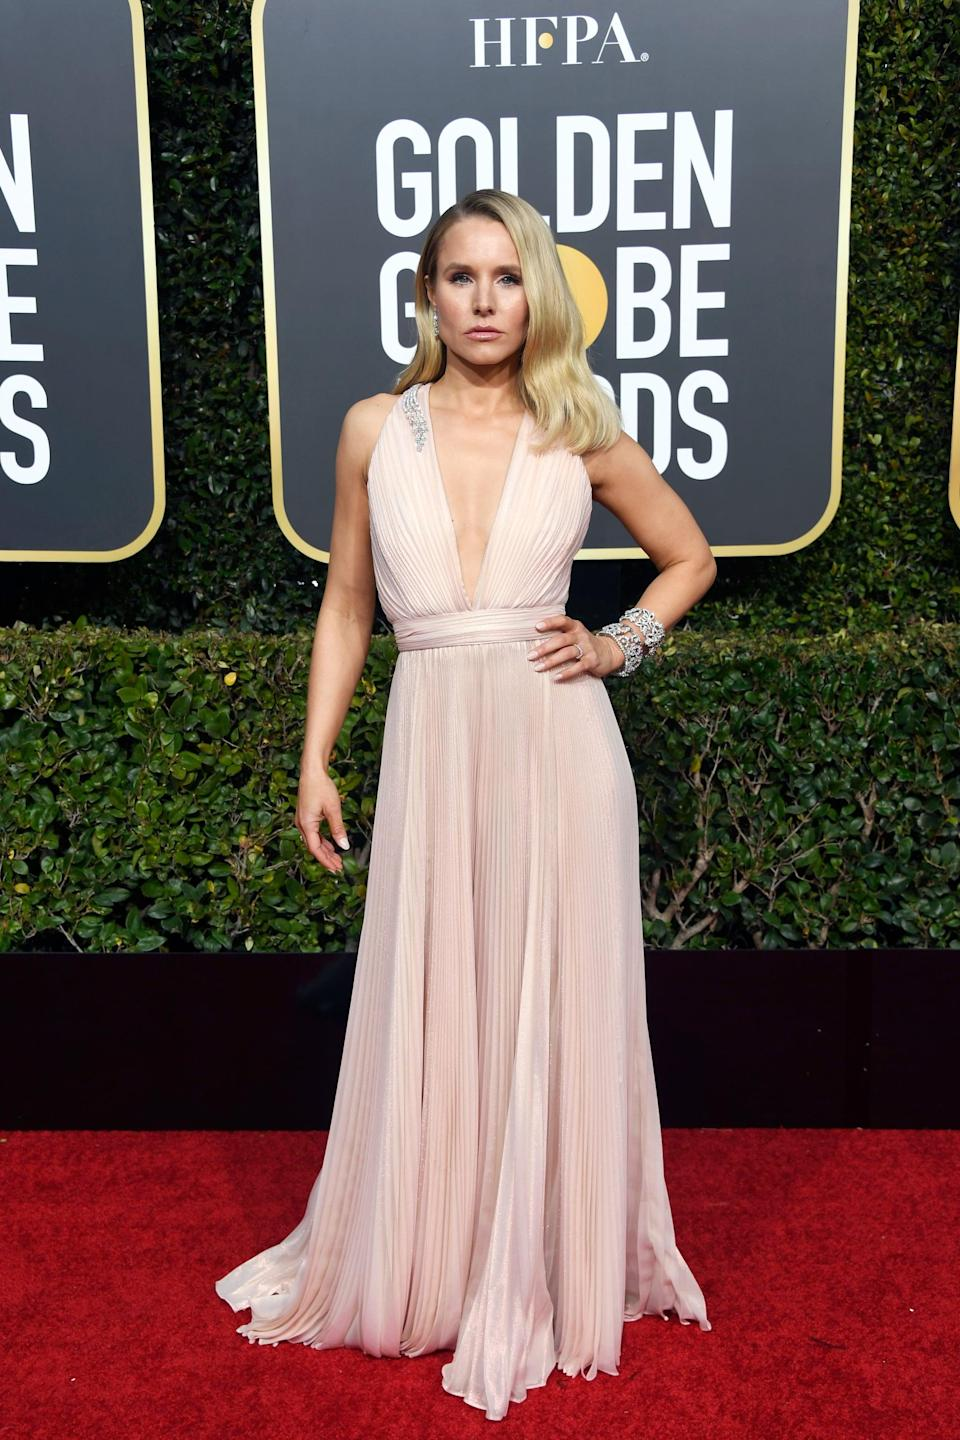 <p>Wearing a Zuhair Murad dress with Harry Winston jewels and Brian Atwood shoes.</p>